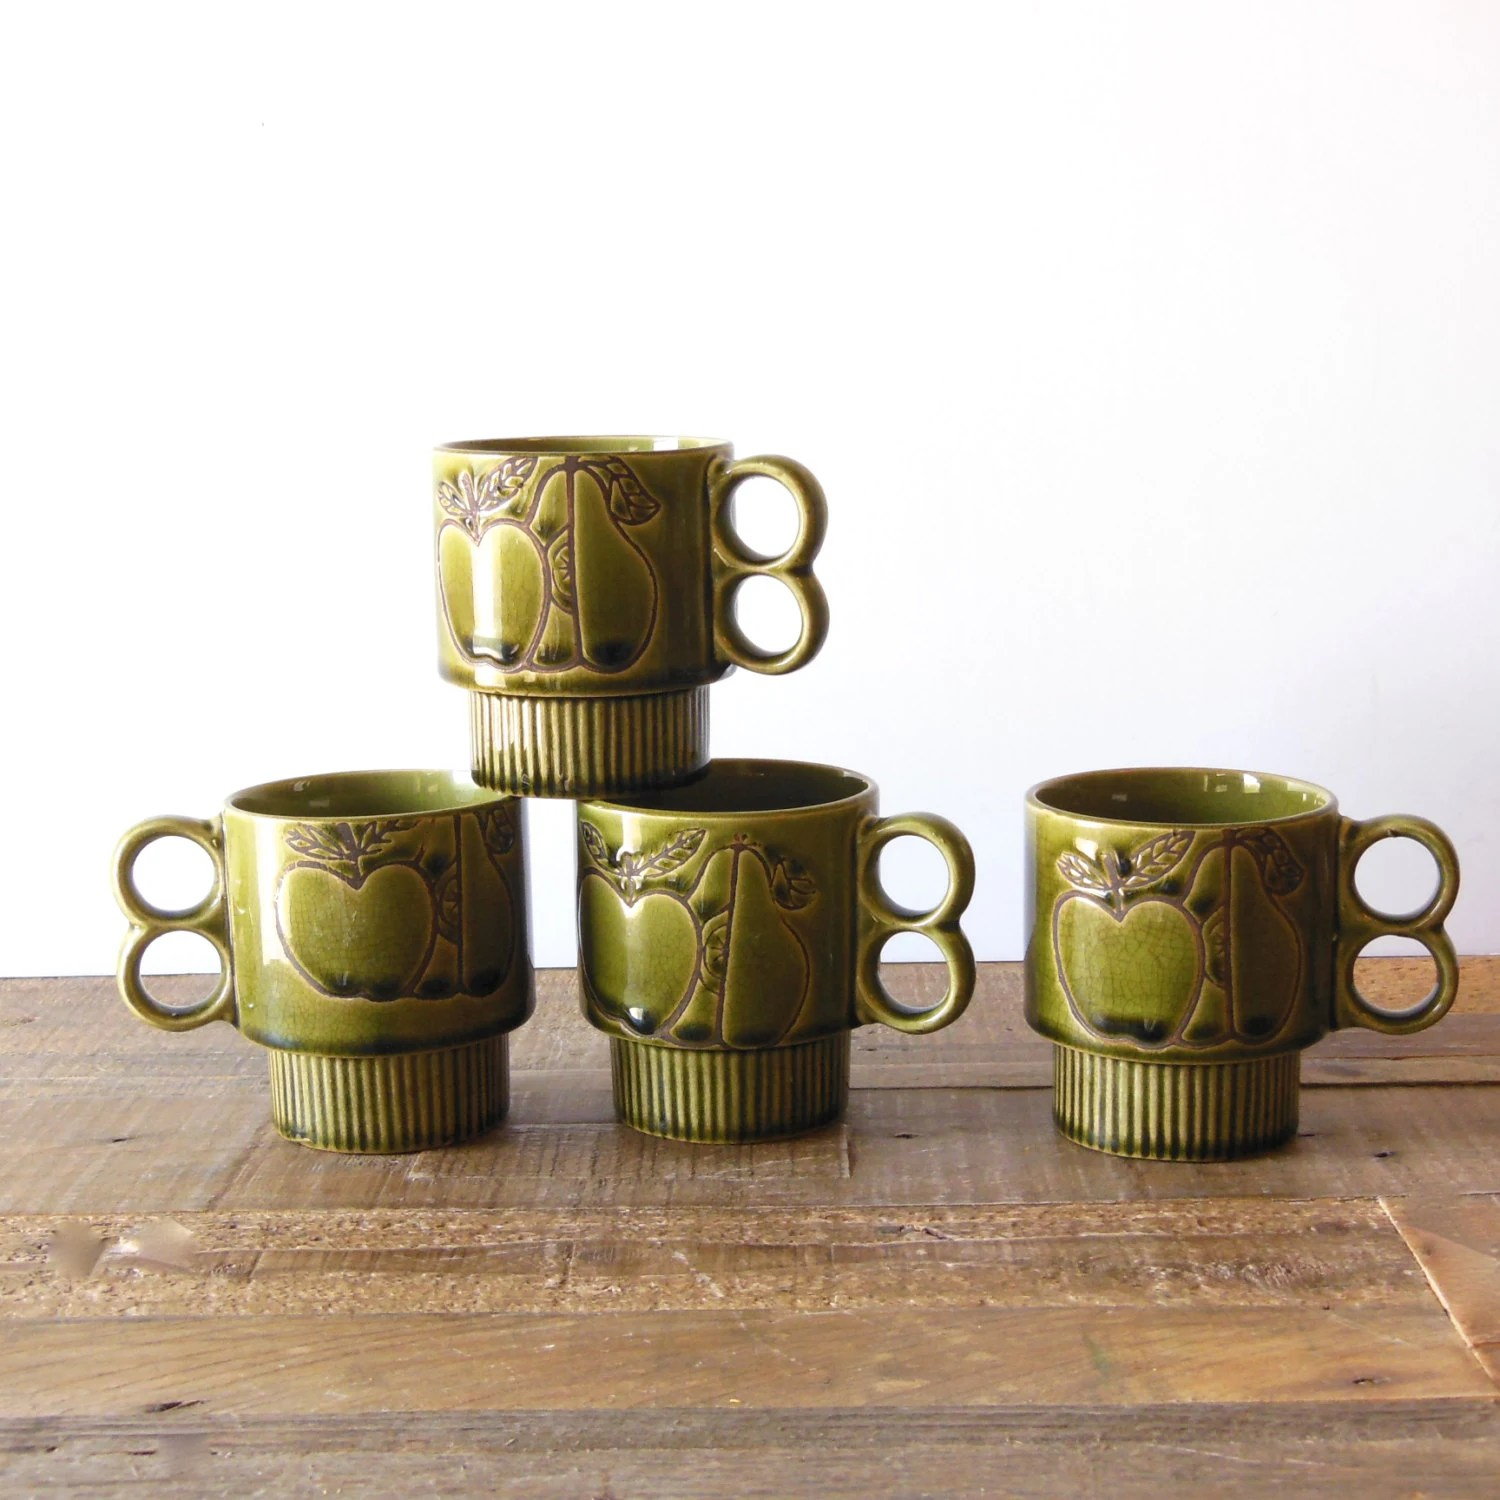 Double Handled Coffee Mugs 4 Vintage Stacking Coffee Mugs Avocado Green Double Handle